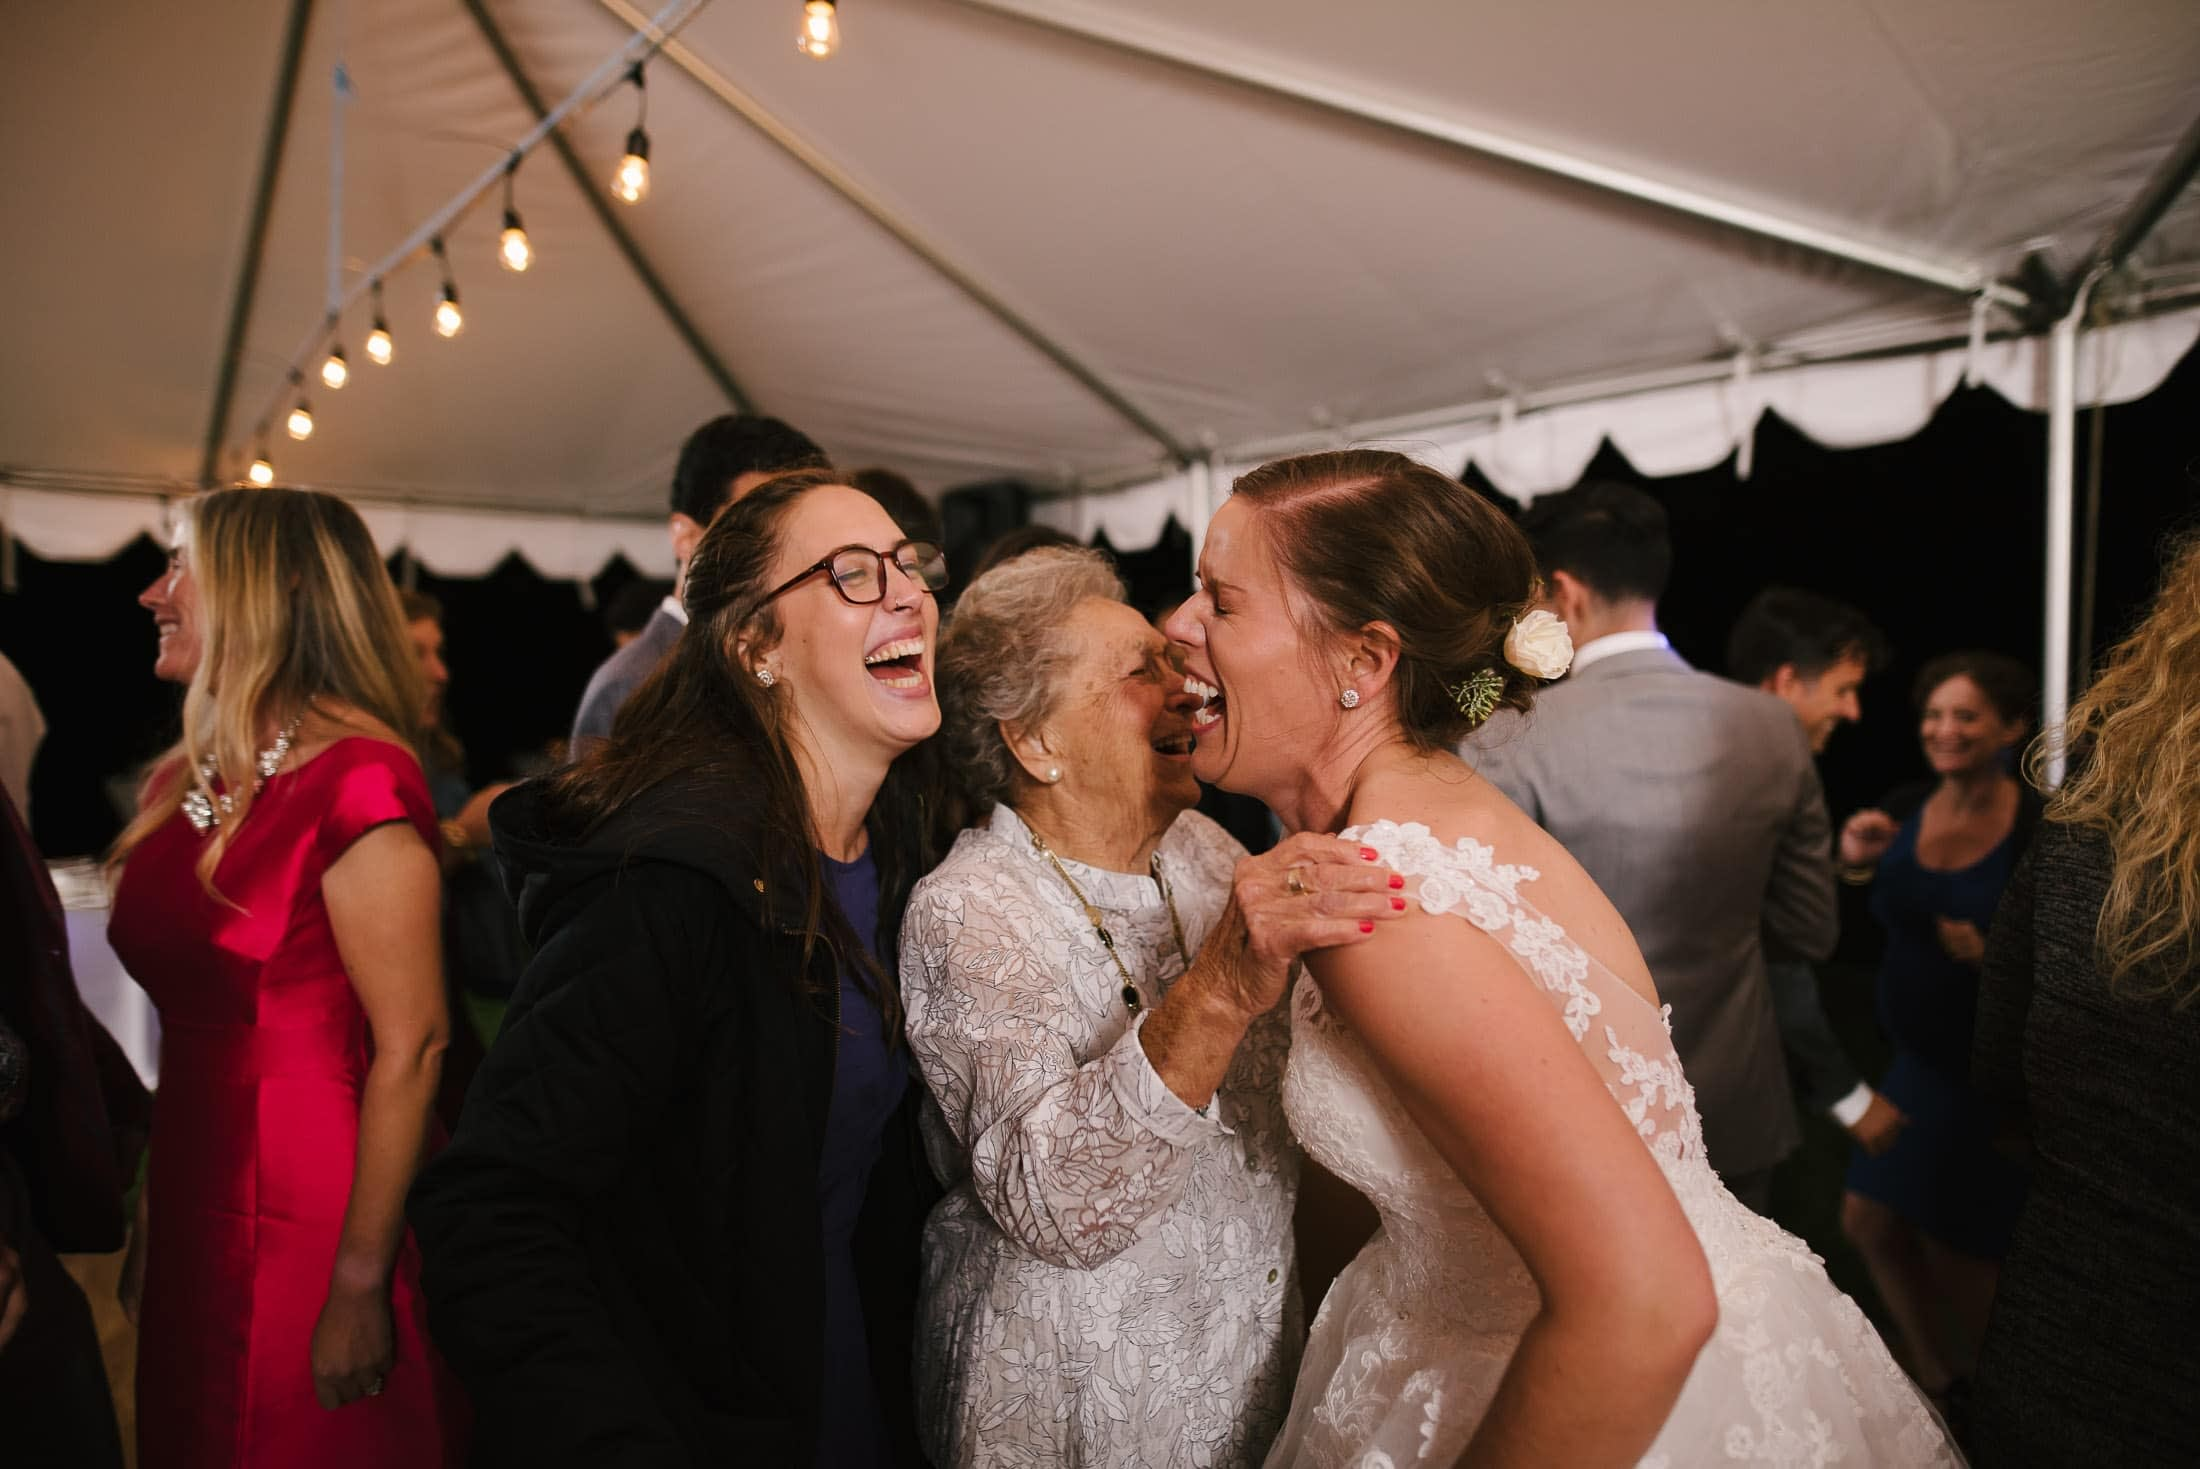 New York Wedding Dancing with Grandma